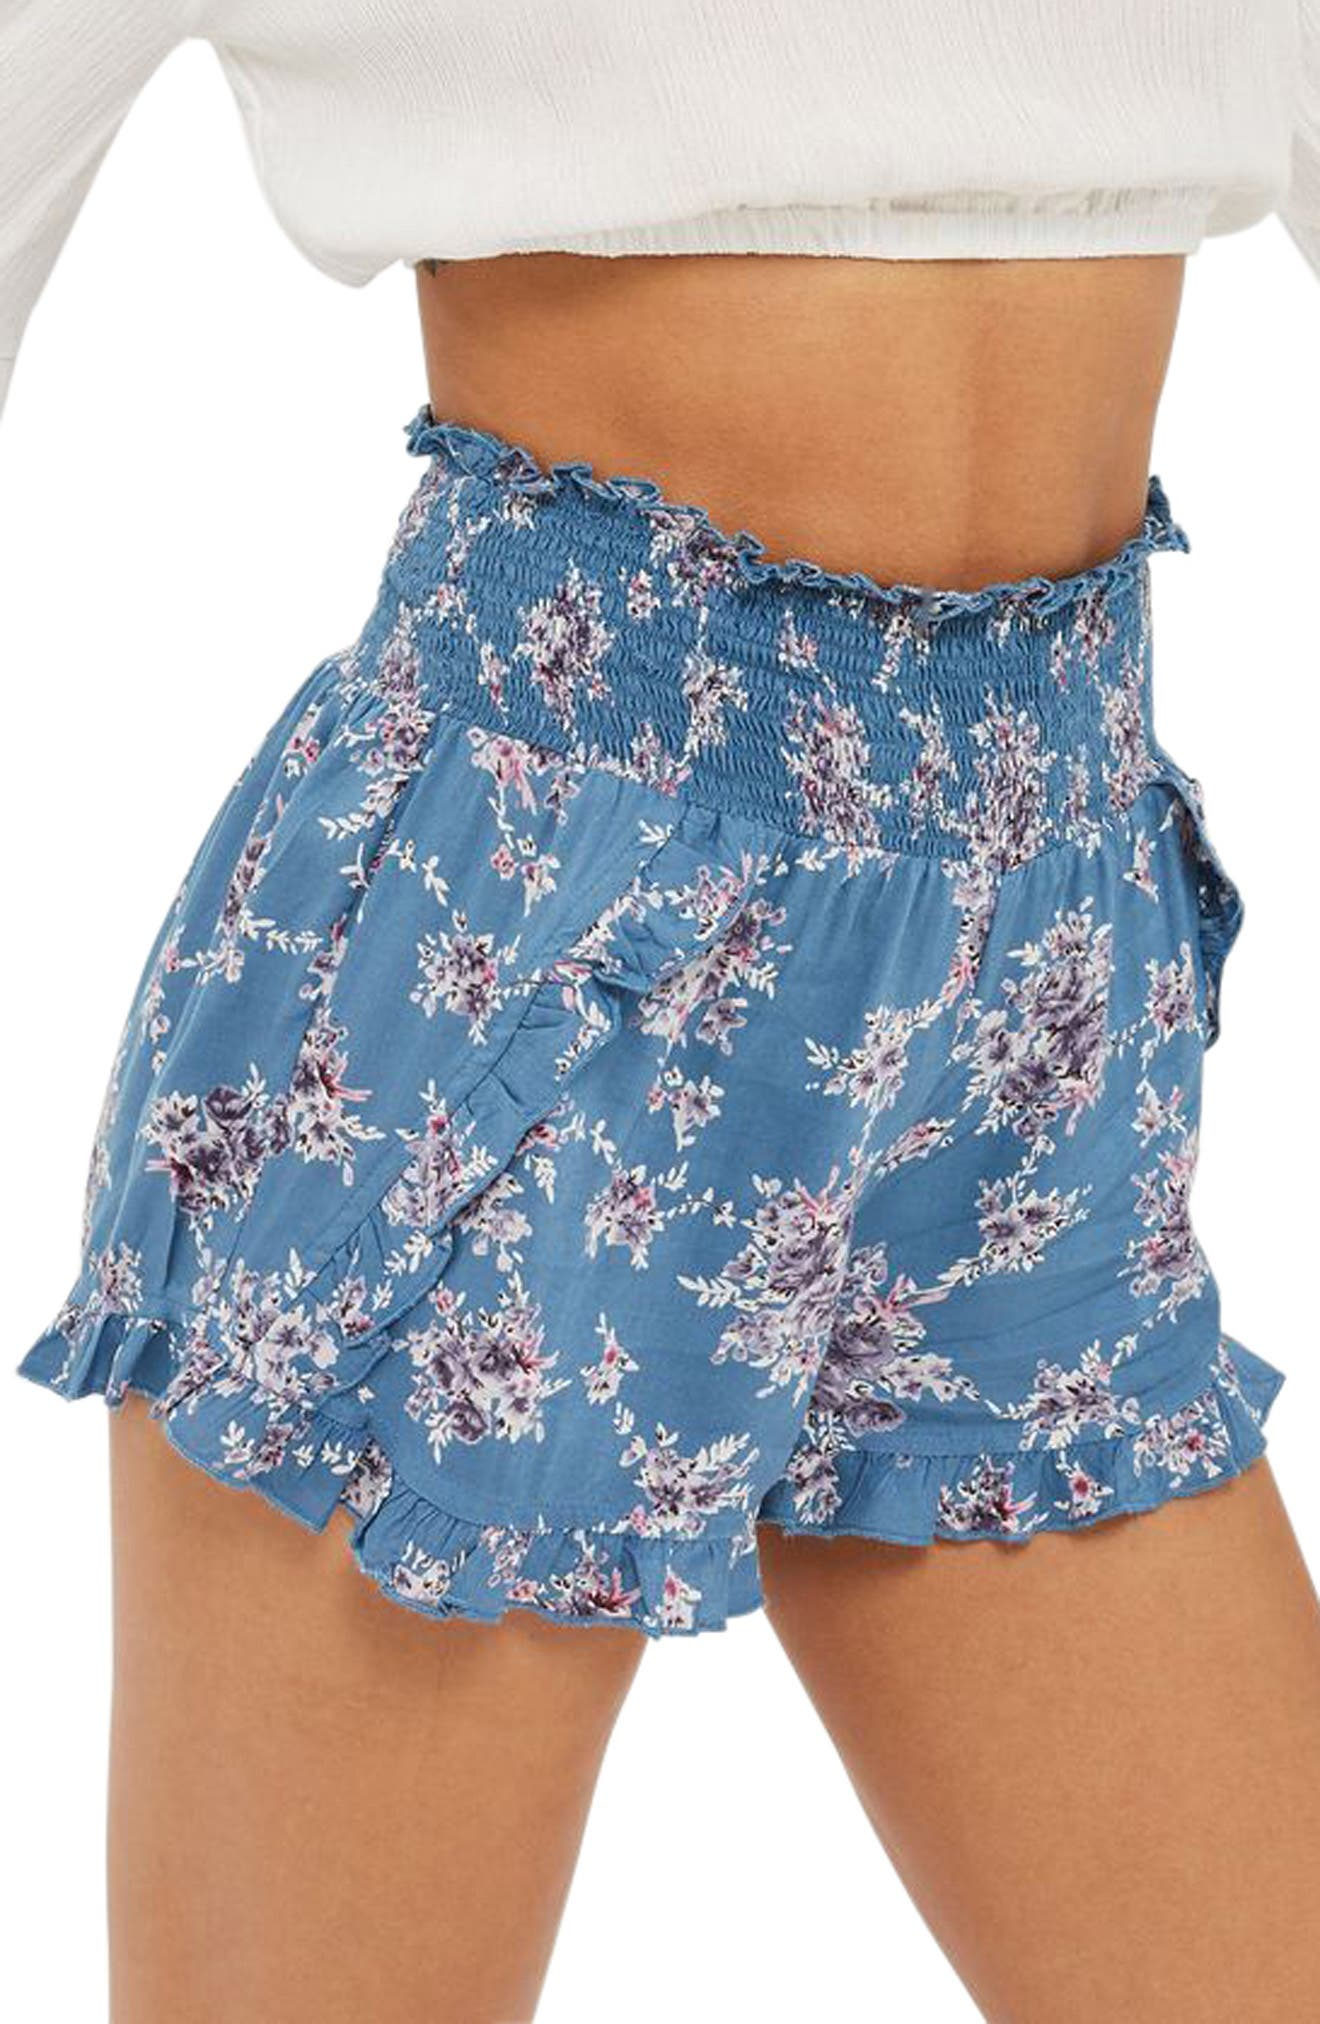 Topshop Blue Floral Ruffle Shorts